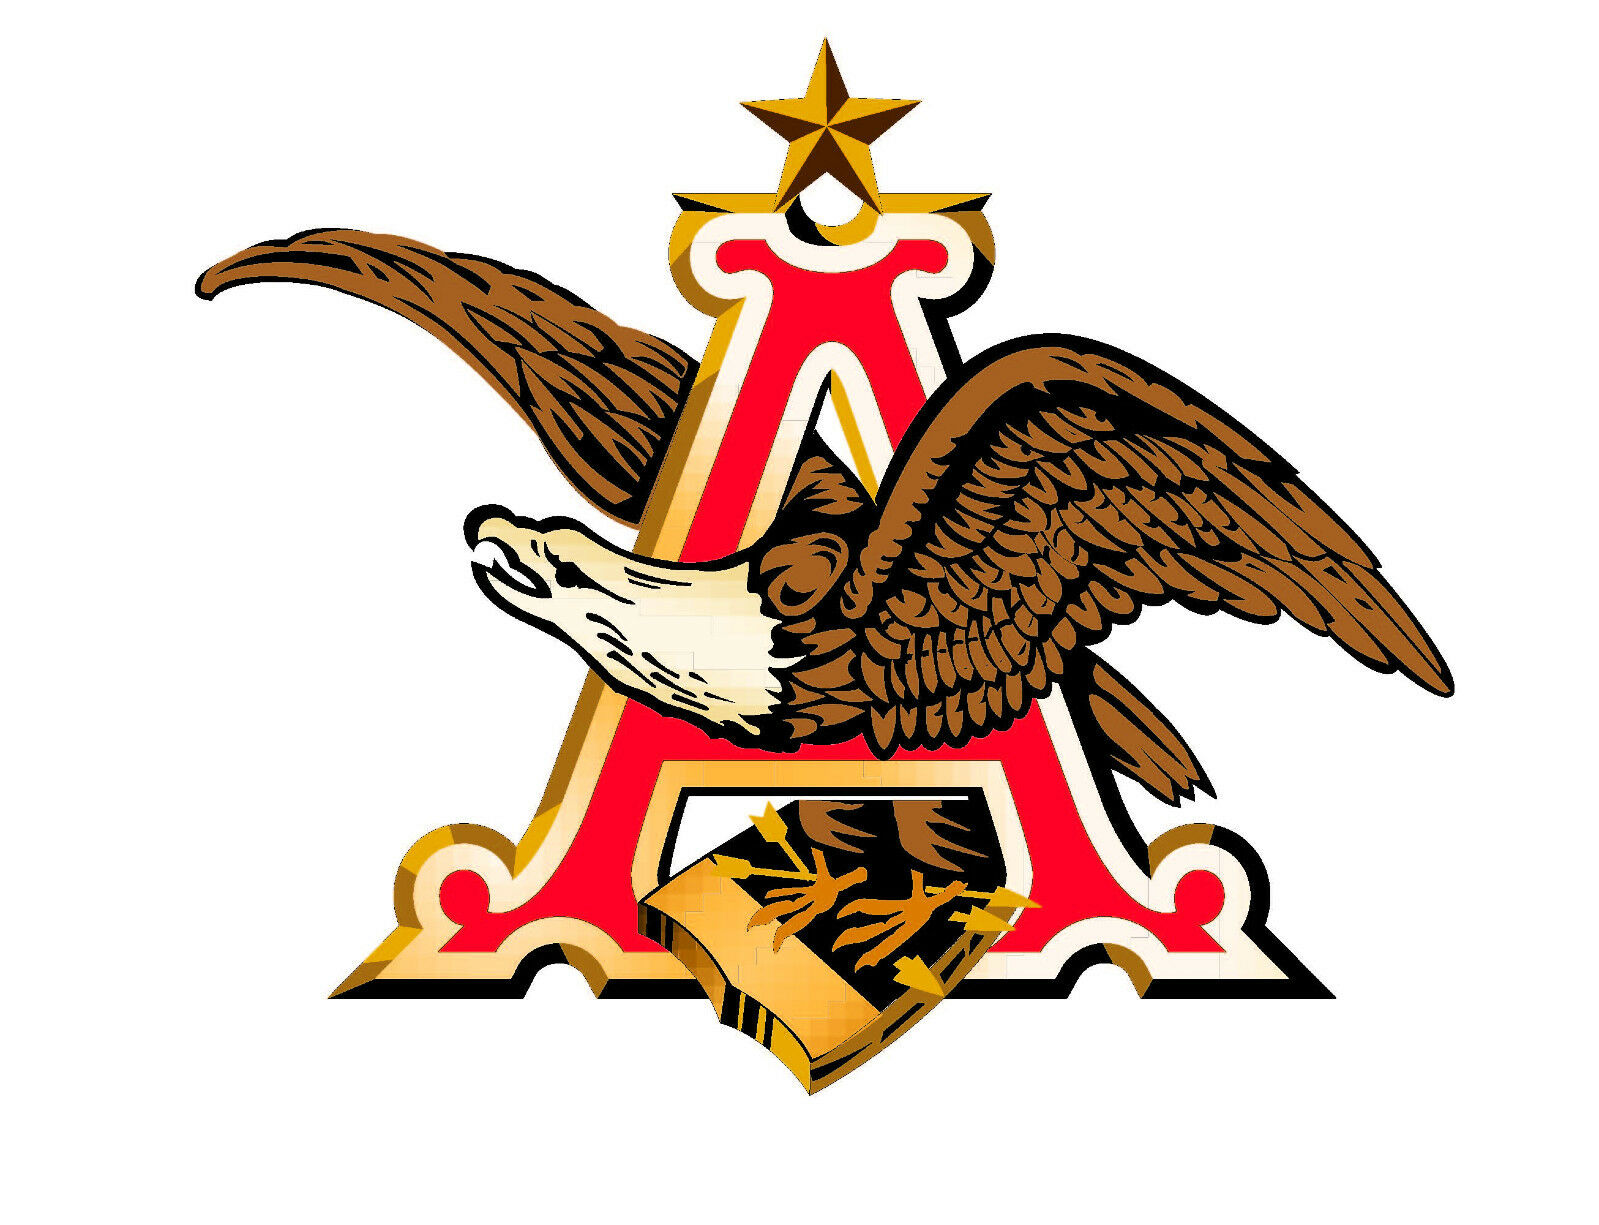 Anheuser busch and france essay